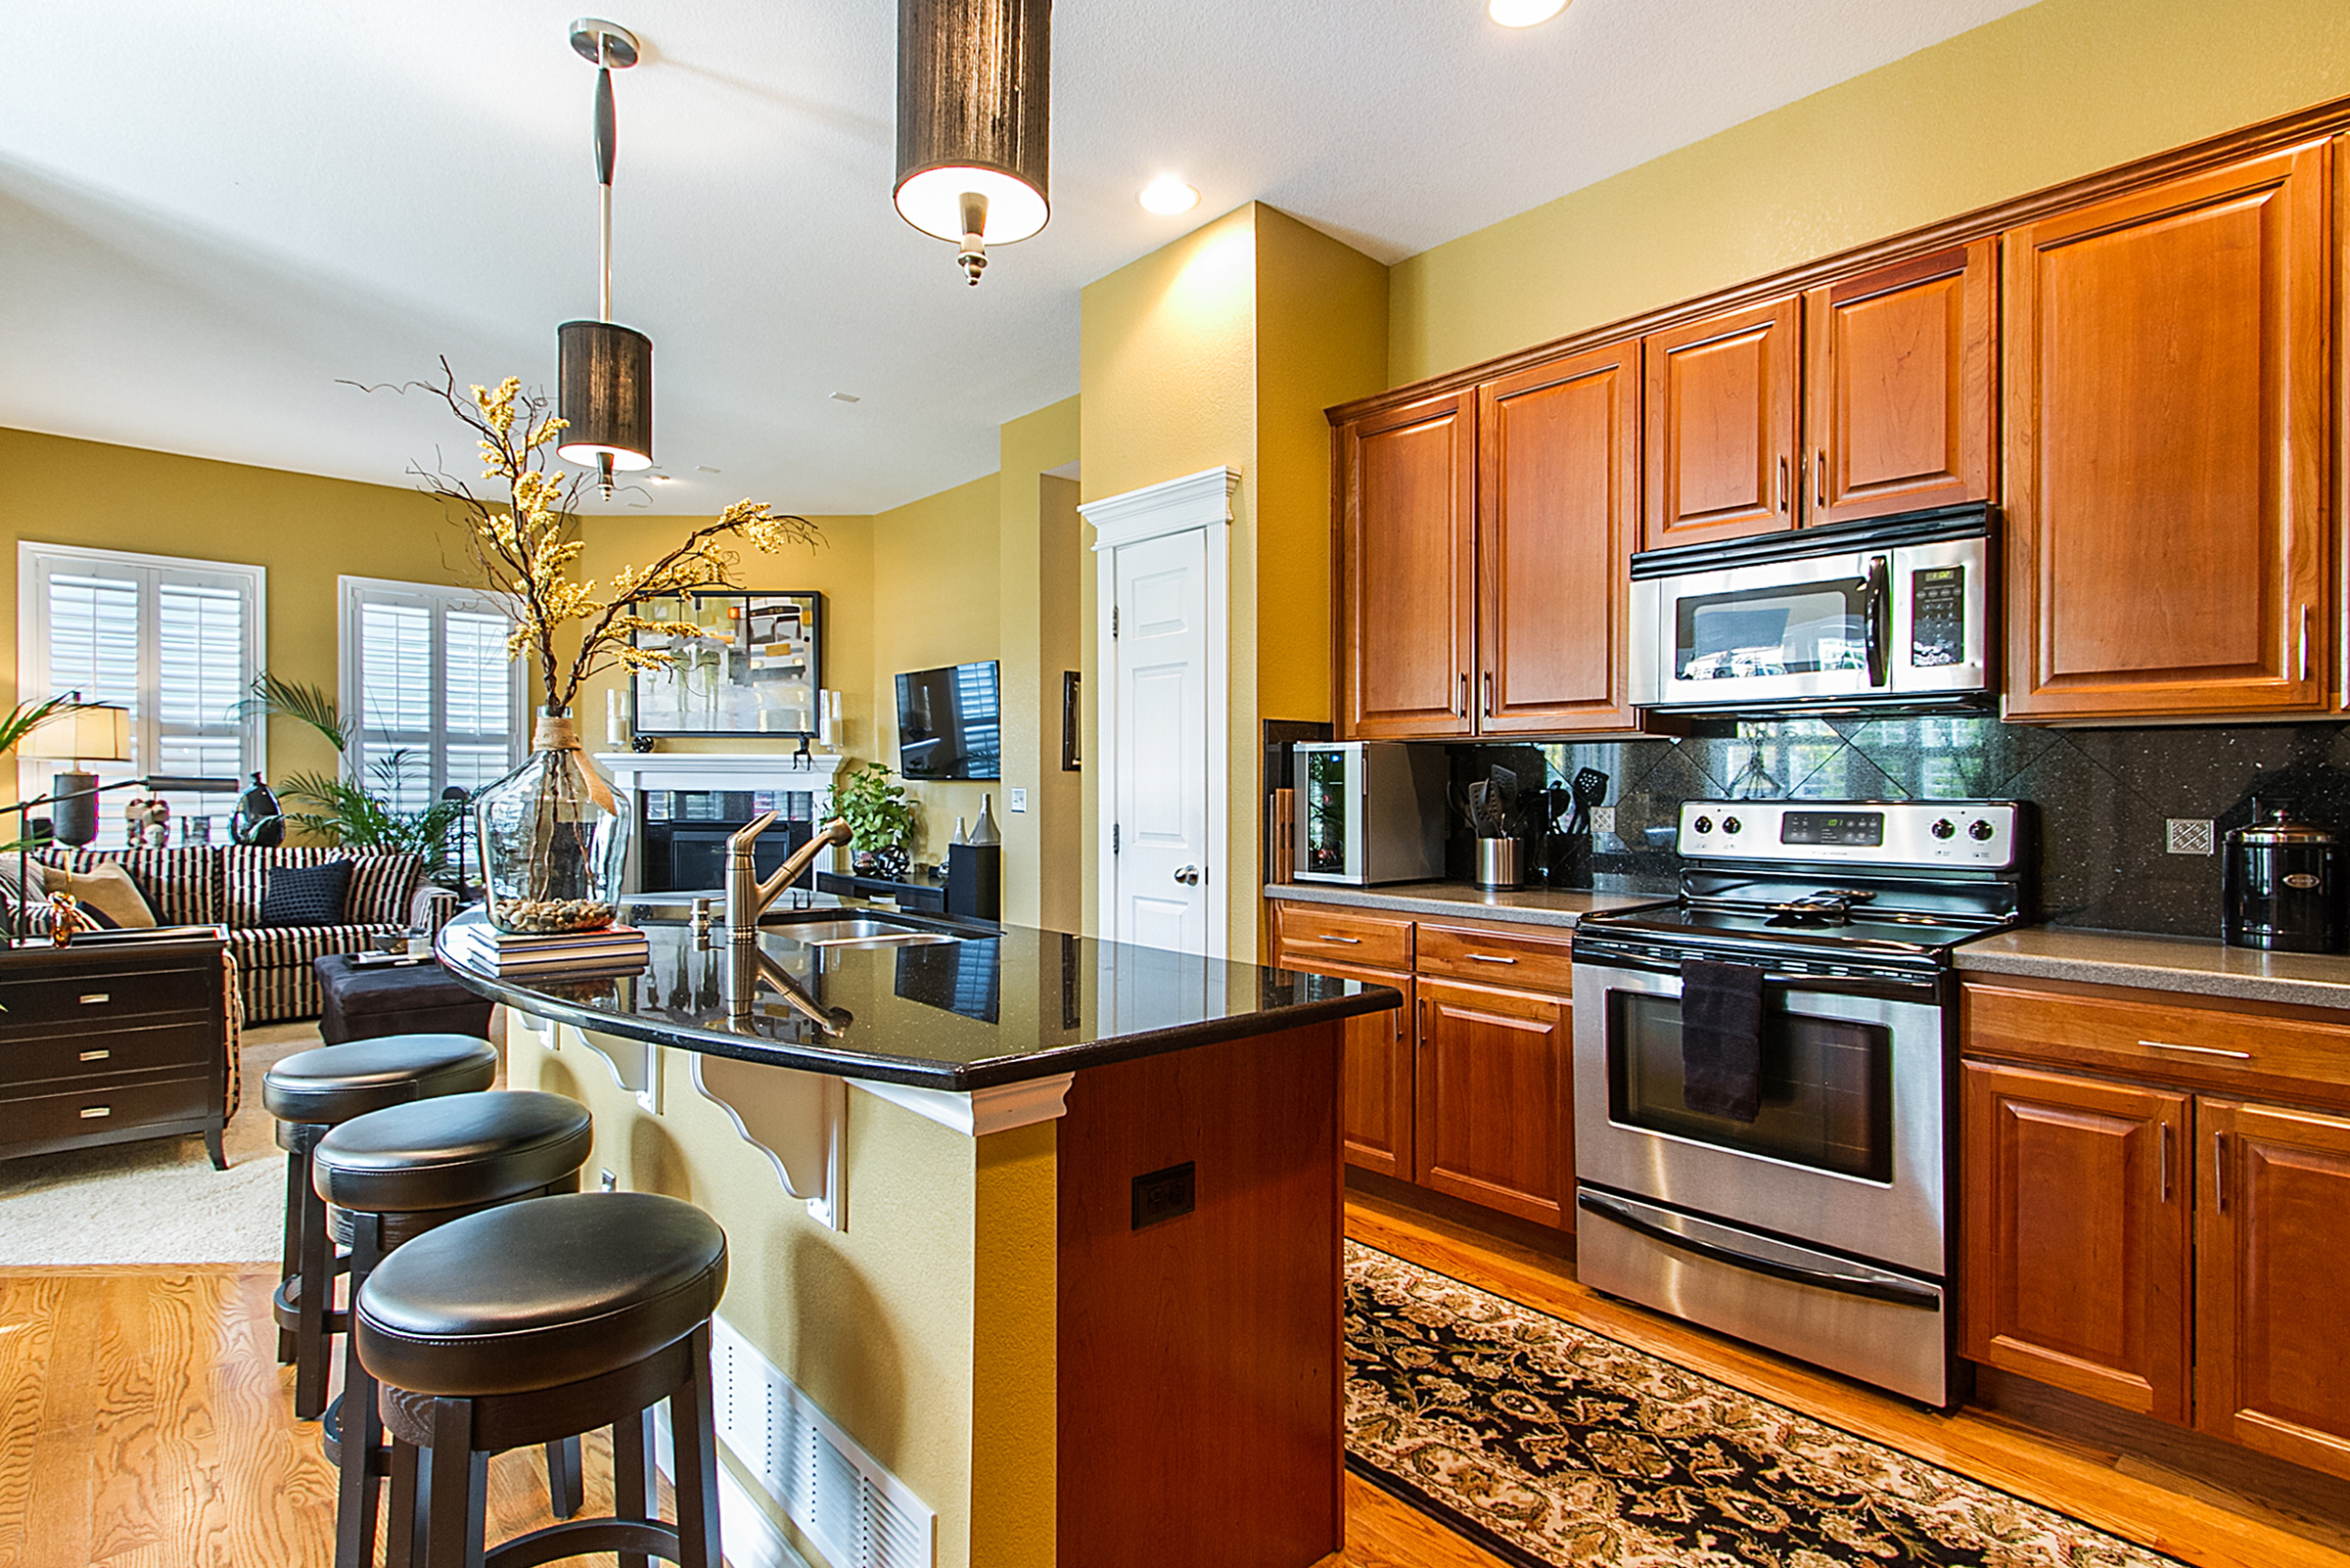 1443787_Granite-Counters-and-Stainless-Appliances_high.jpg